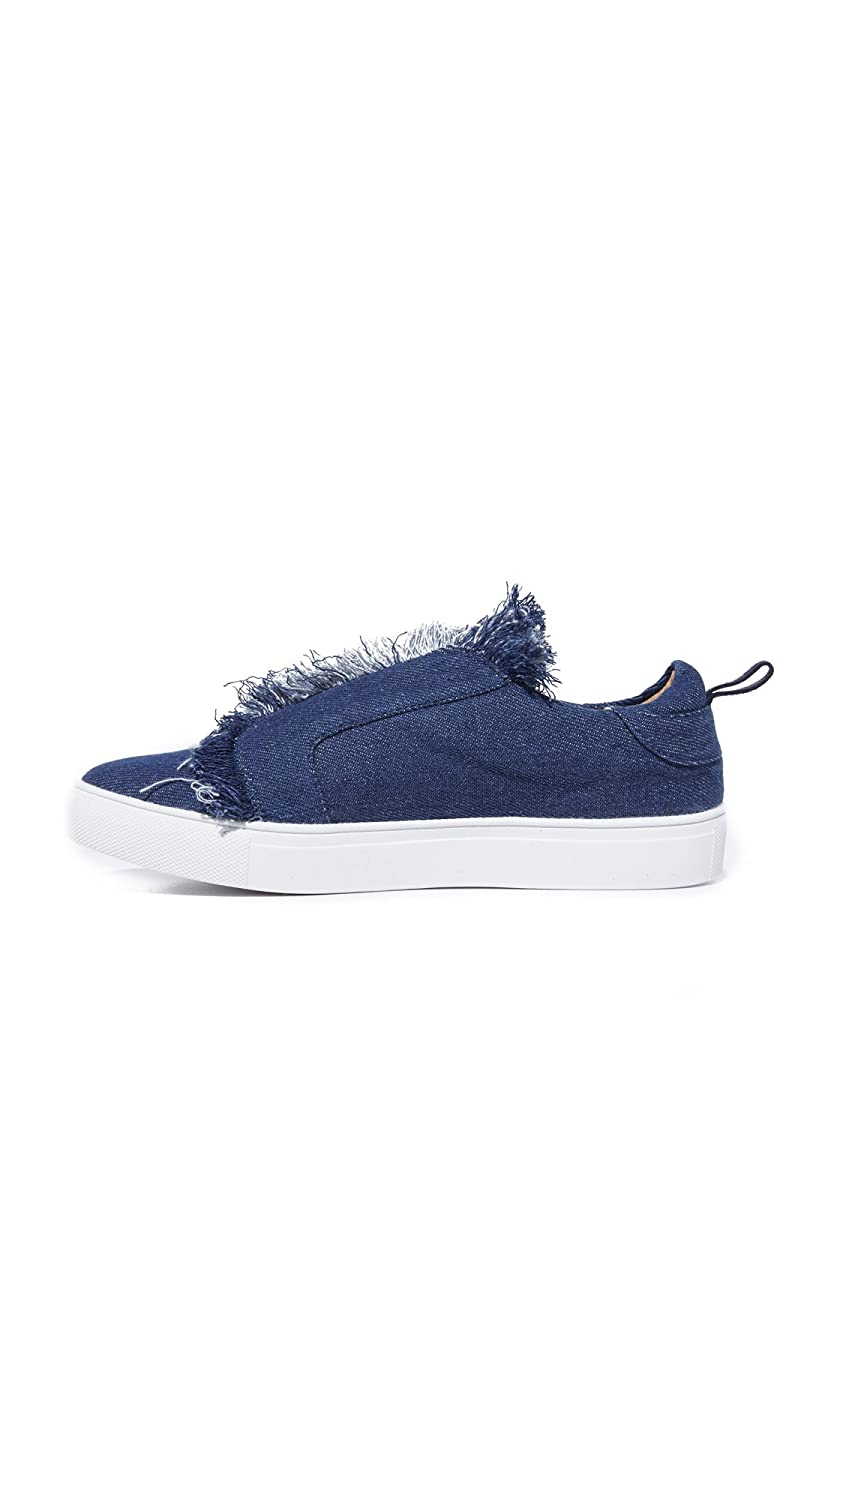 Jaggar Womens Fray Fabric Low Top Slip On Fashion Sneakers